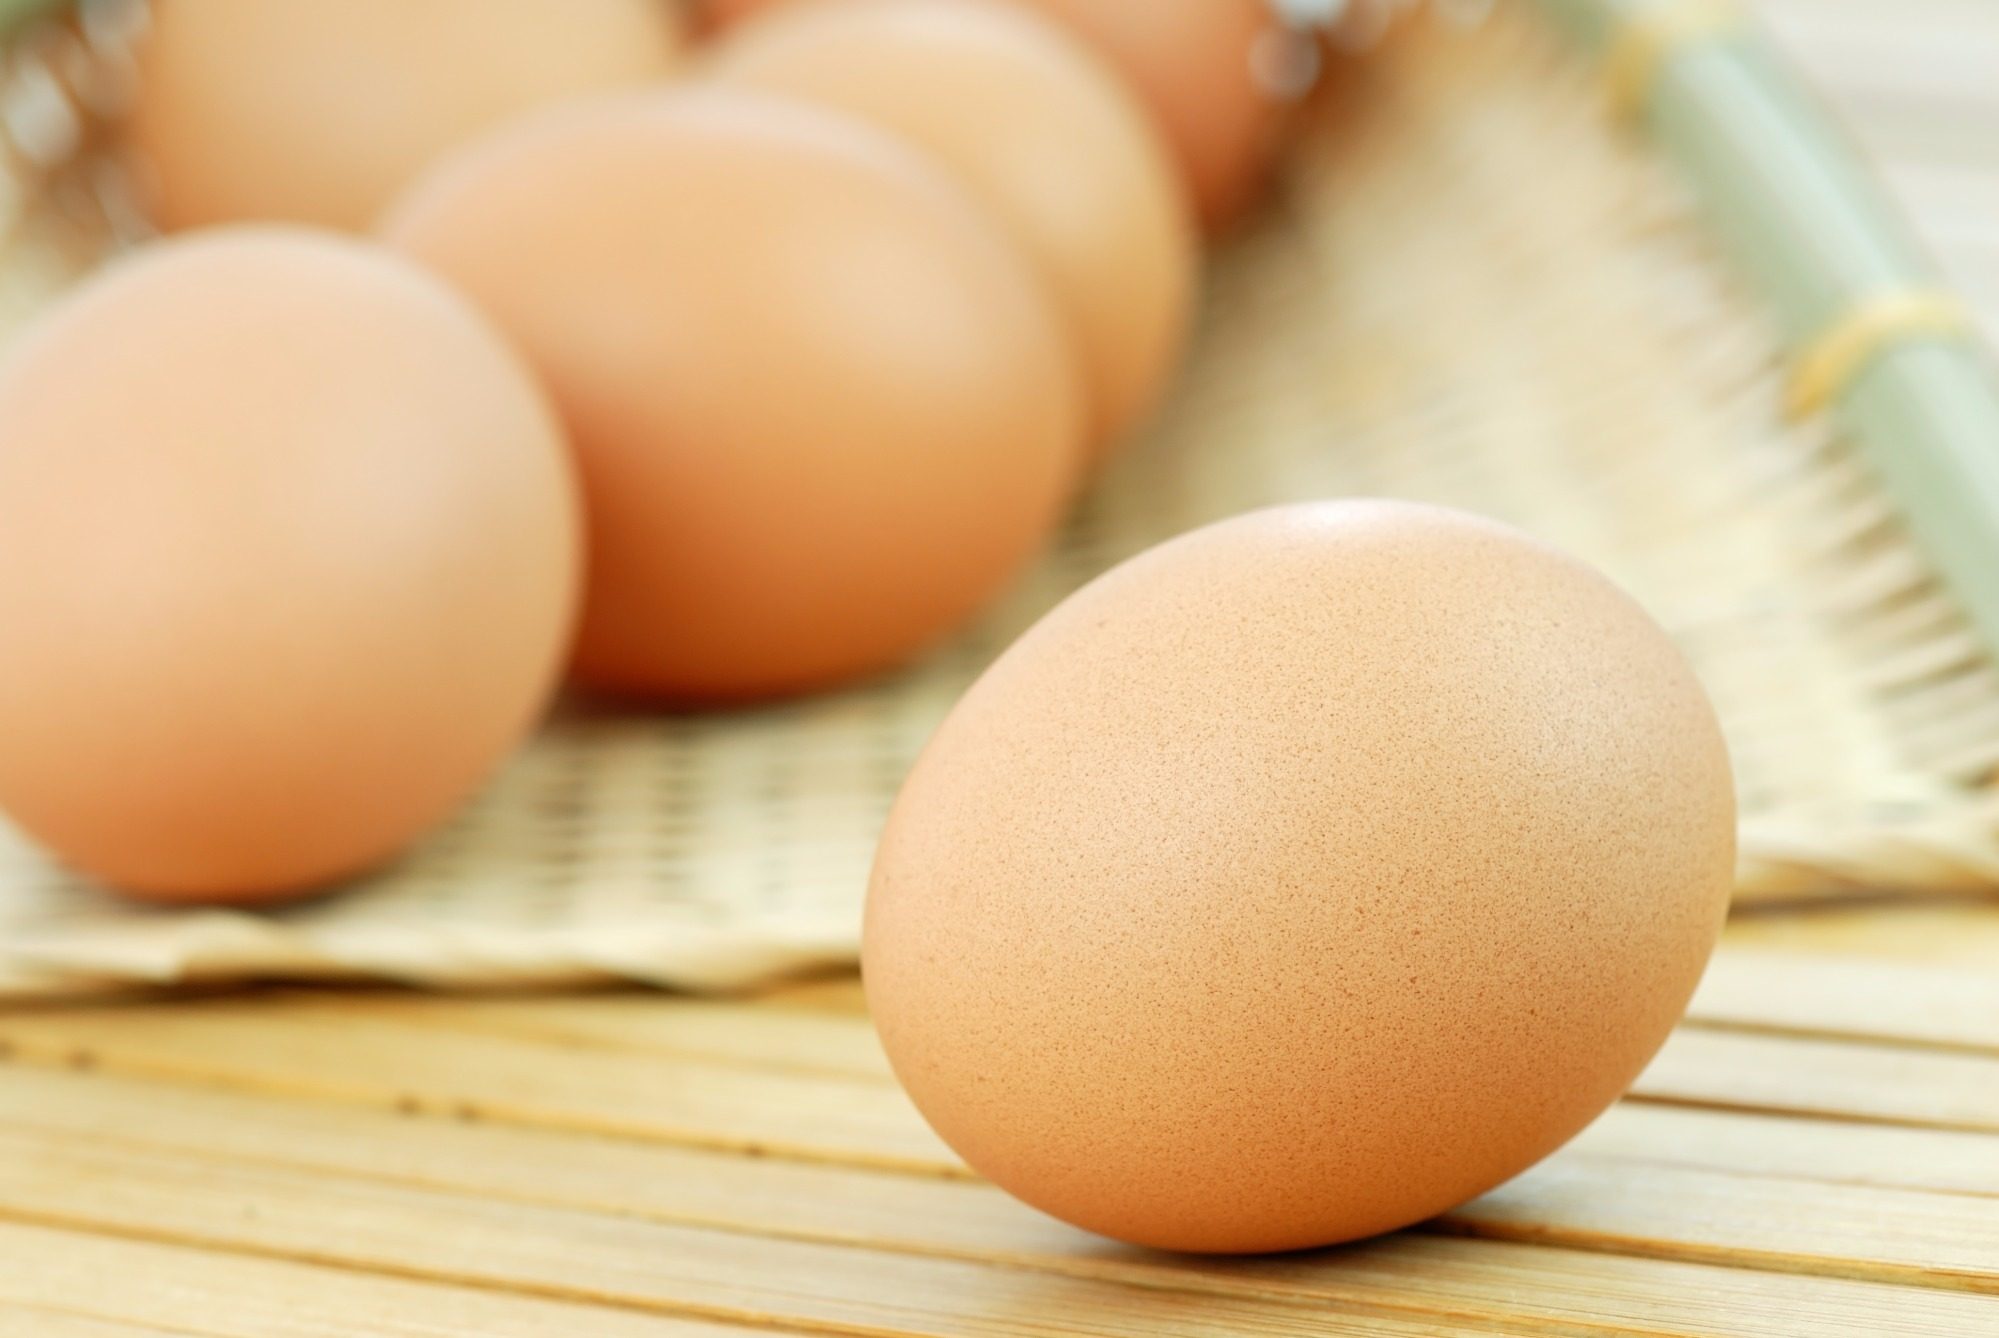 Panel highlights animal welfare in egg production as market demand